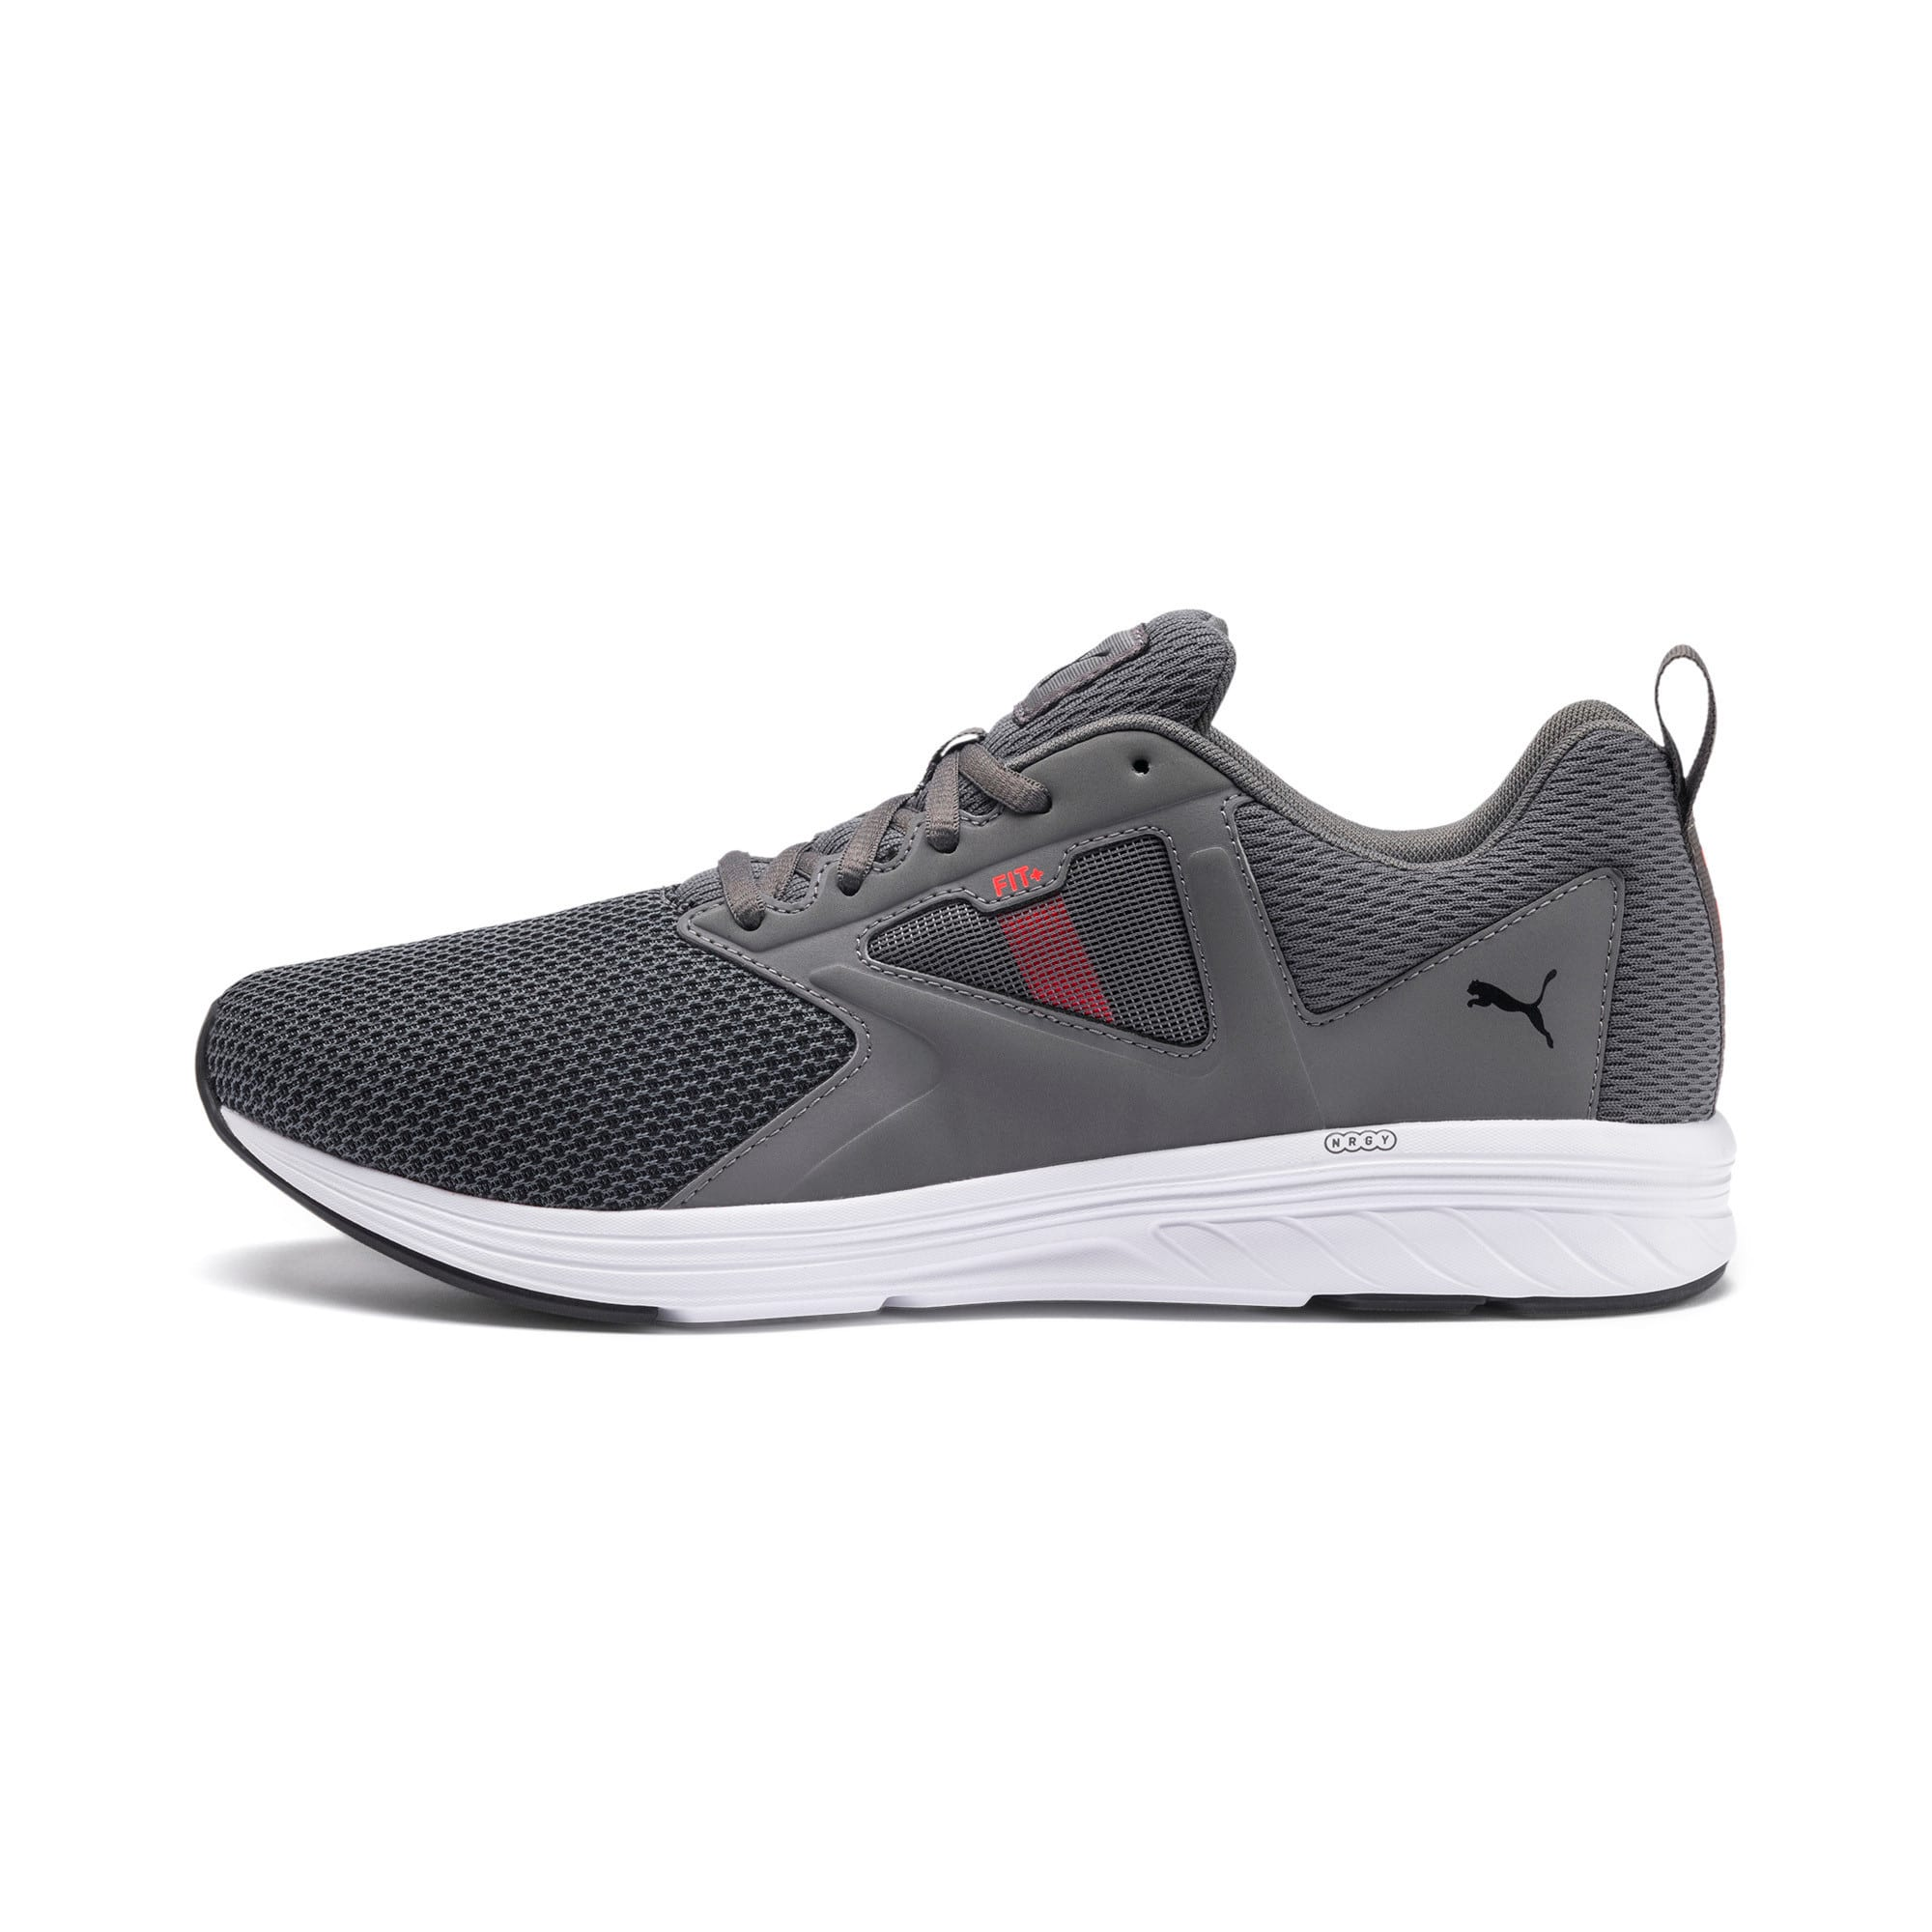 NRGY Asteroid Running Shoes